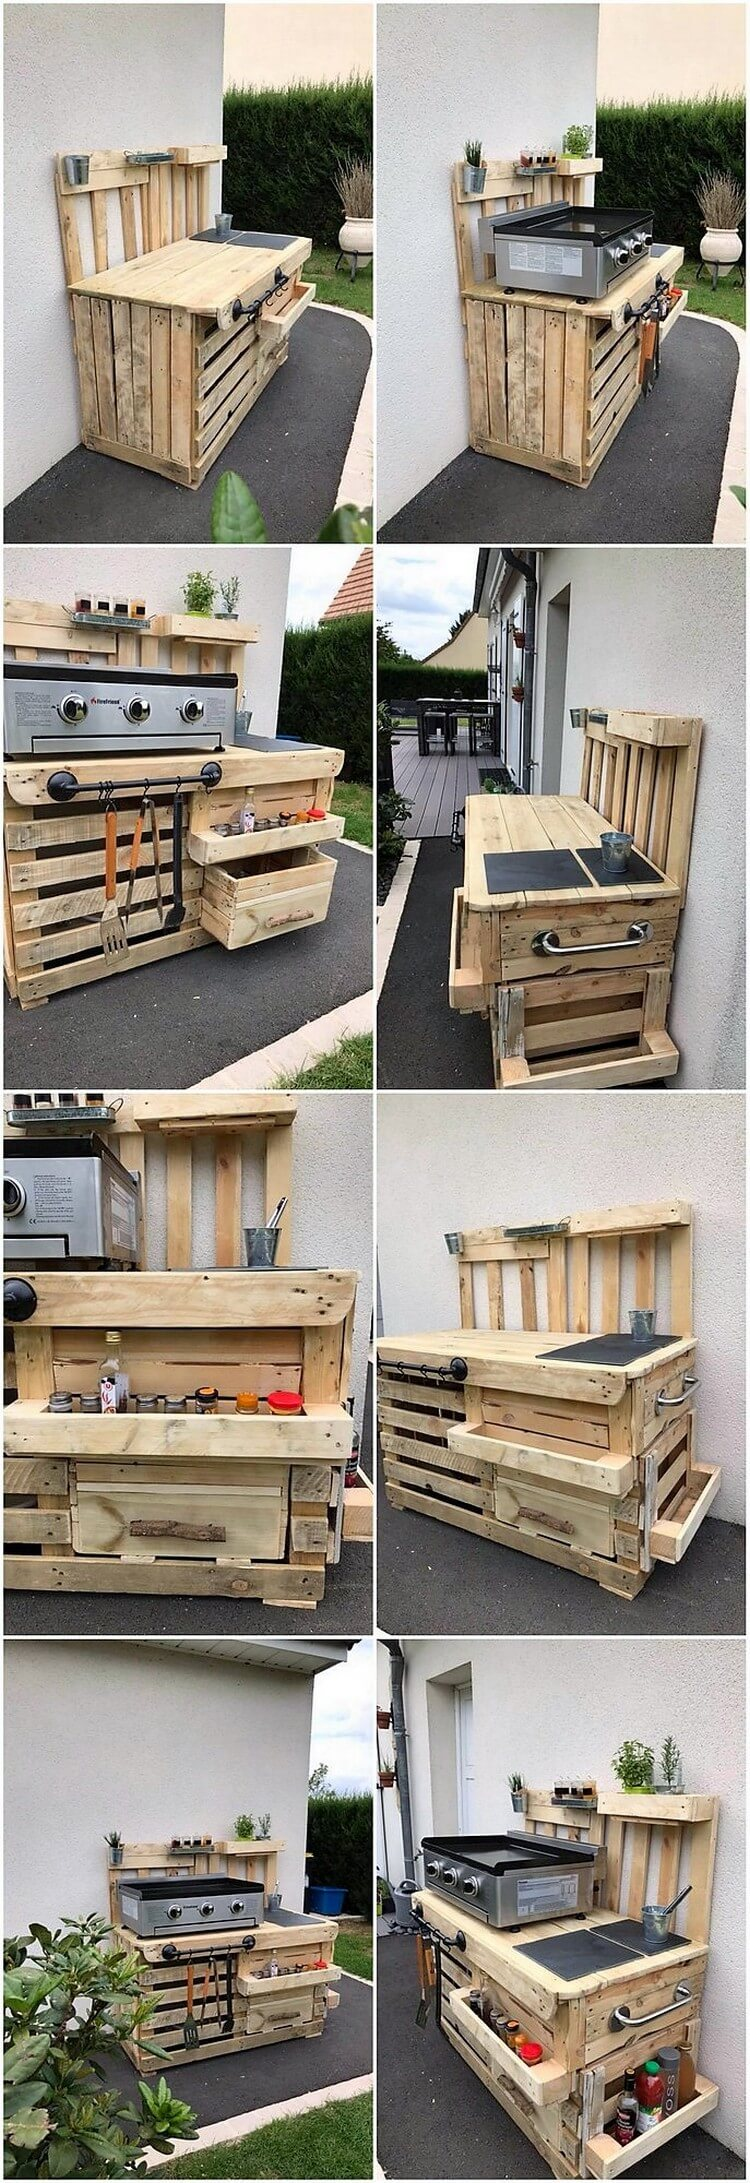 Recycled Wood Pallet Outdoor Kitchen Idea Wooden Pallet Ideas